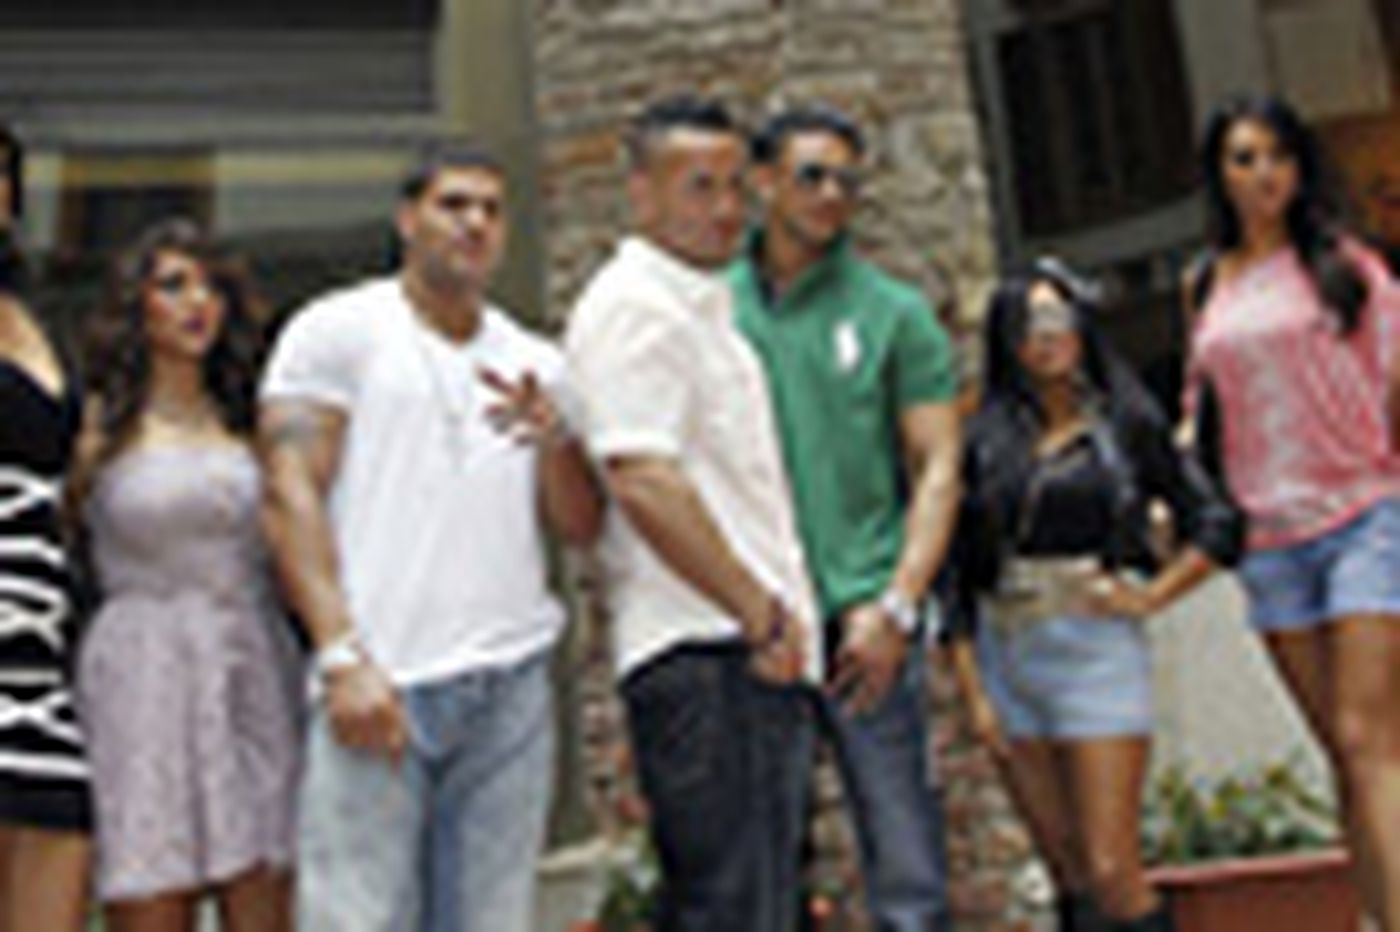 Sideshow: 'Jersey Shore' guys slug it out in Italy